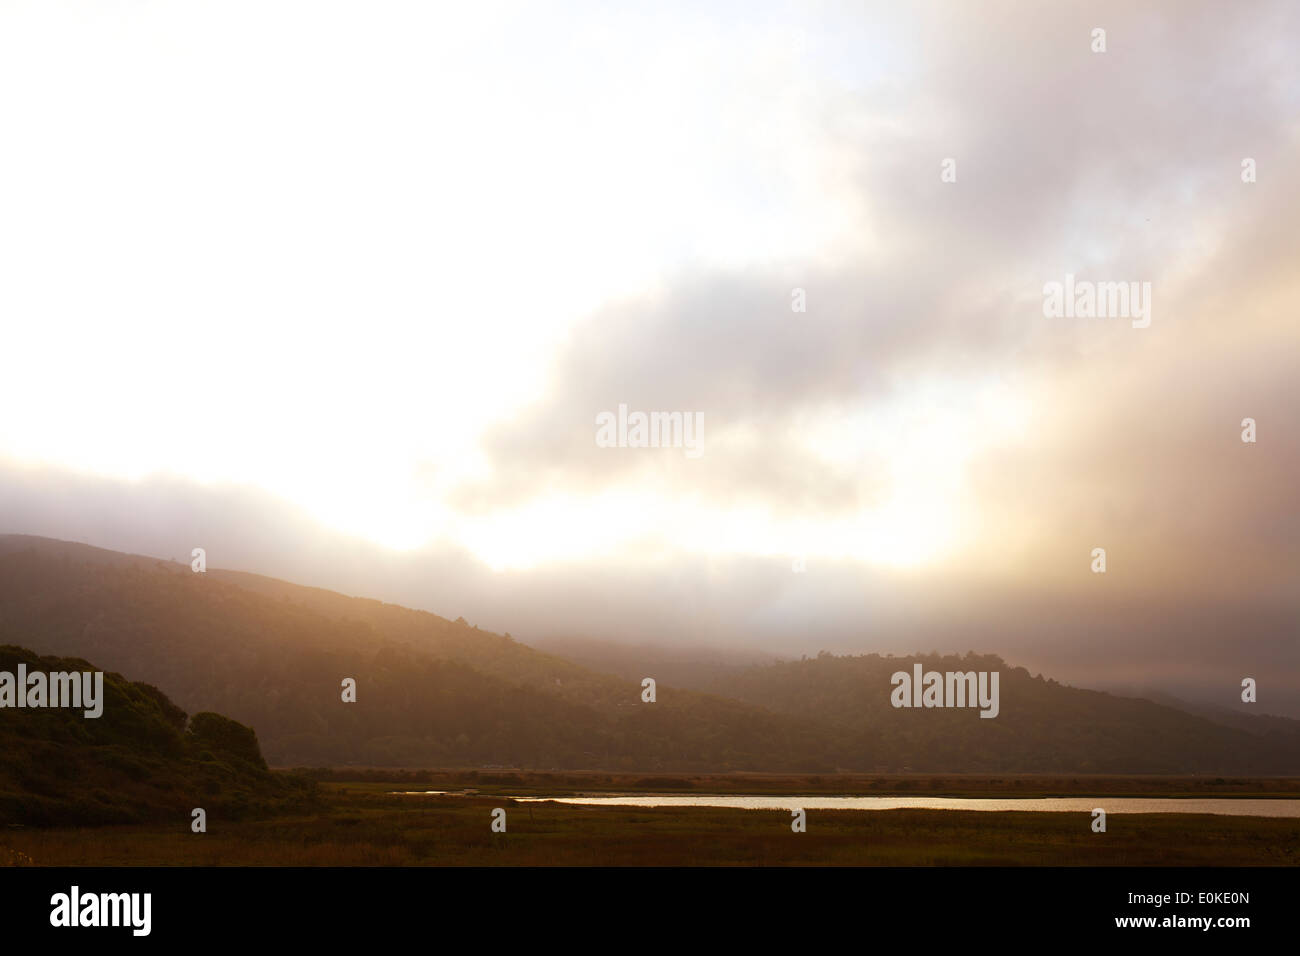 The sun sets over the foggy landscape with mountains in the distance and a body of water in the foreground. - Stock Image